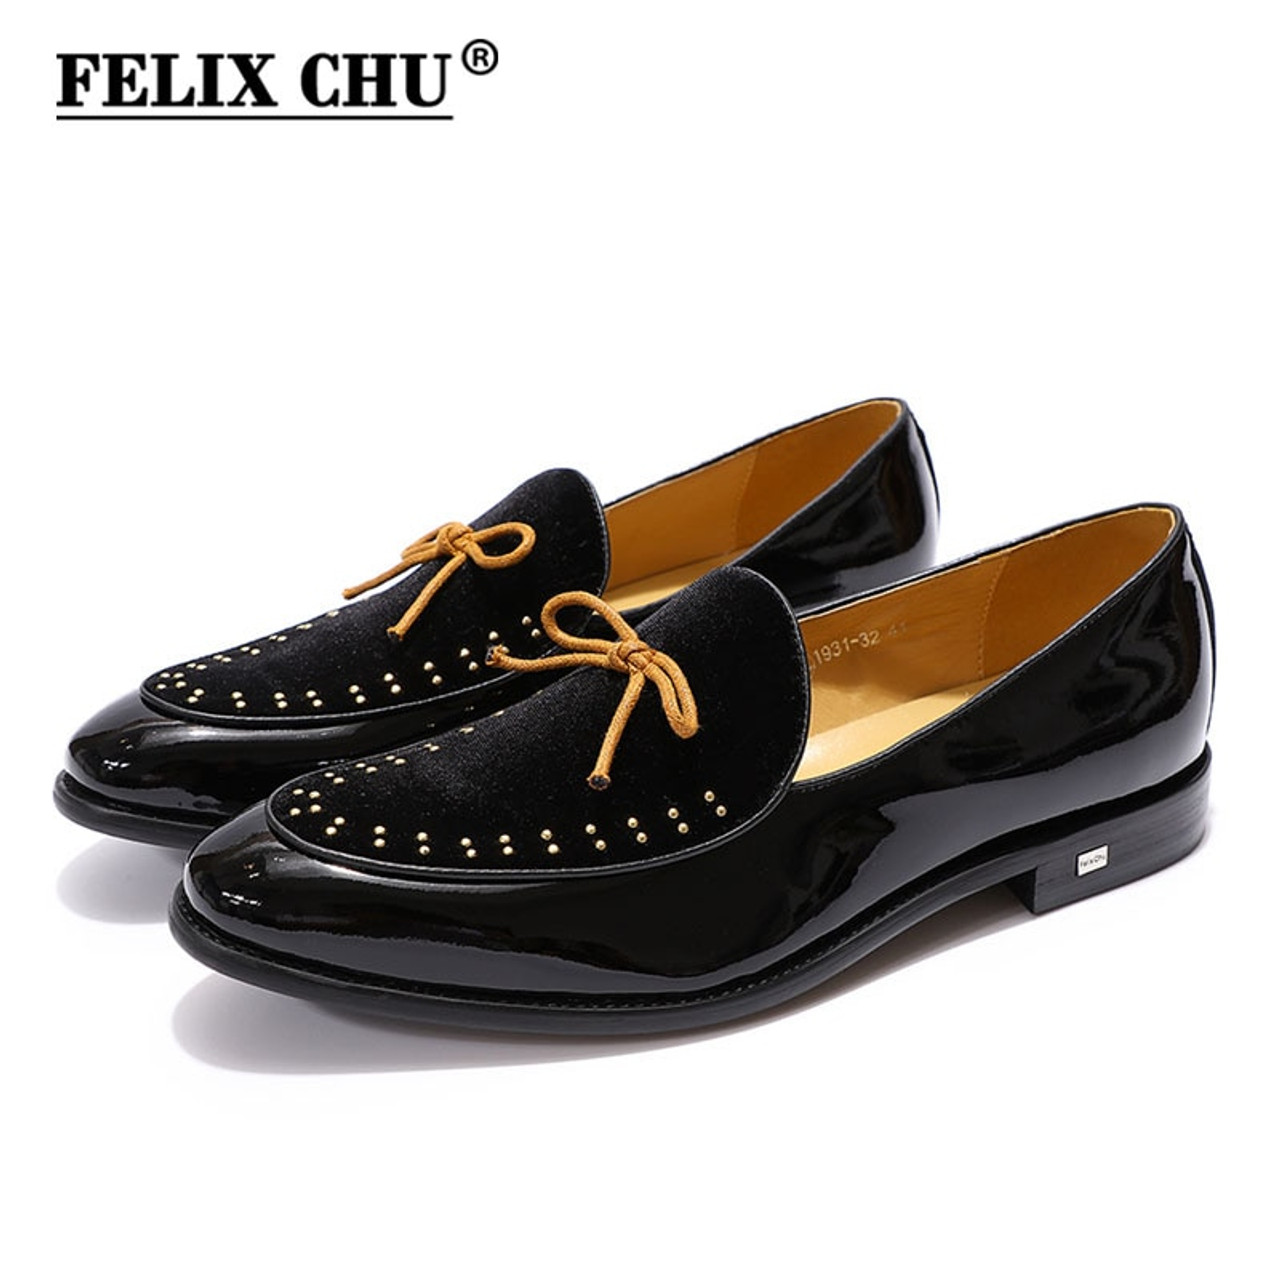 57d12db14b8 FELIX CHU Brand Mens Shoes 2018 New Breathable Comfortable Men Loafers  Luxury Street Men s Wedding Party ...